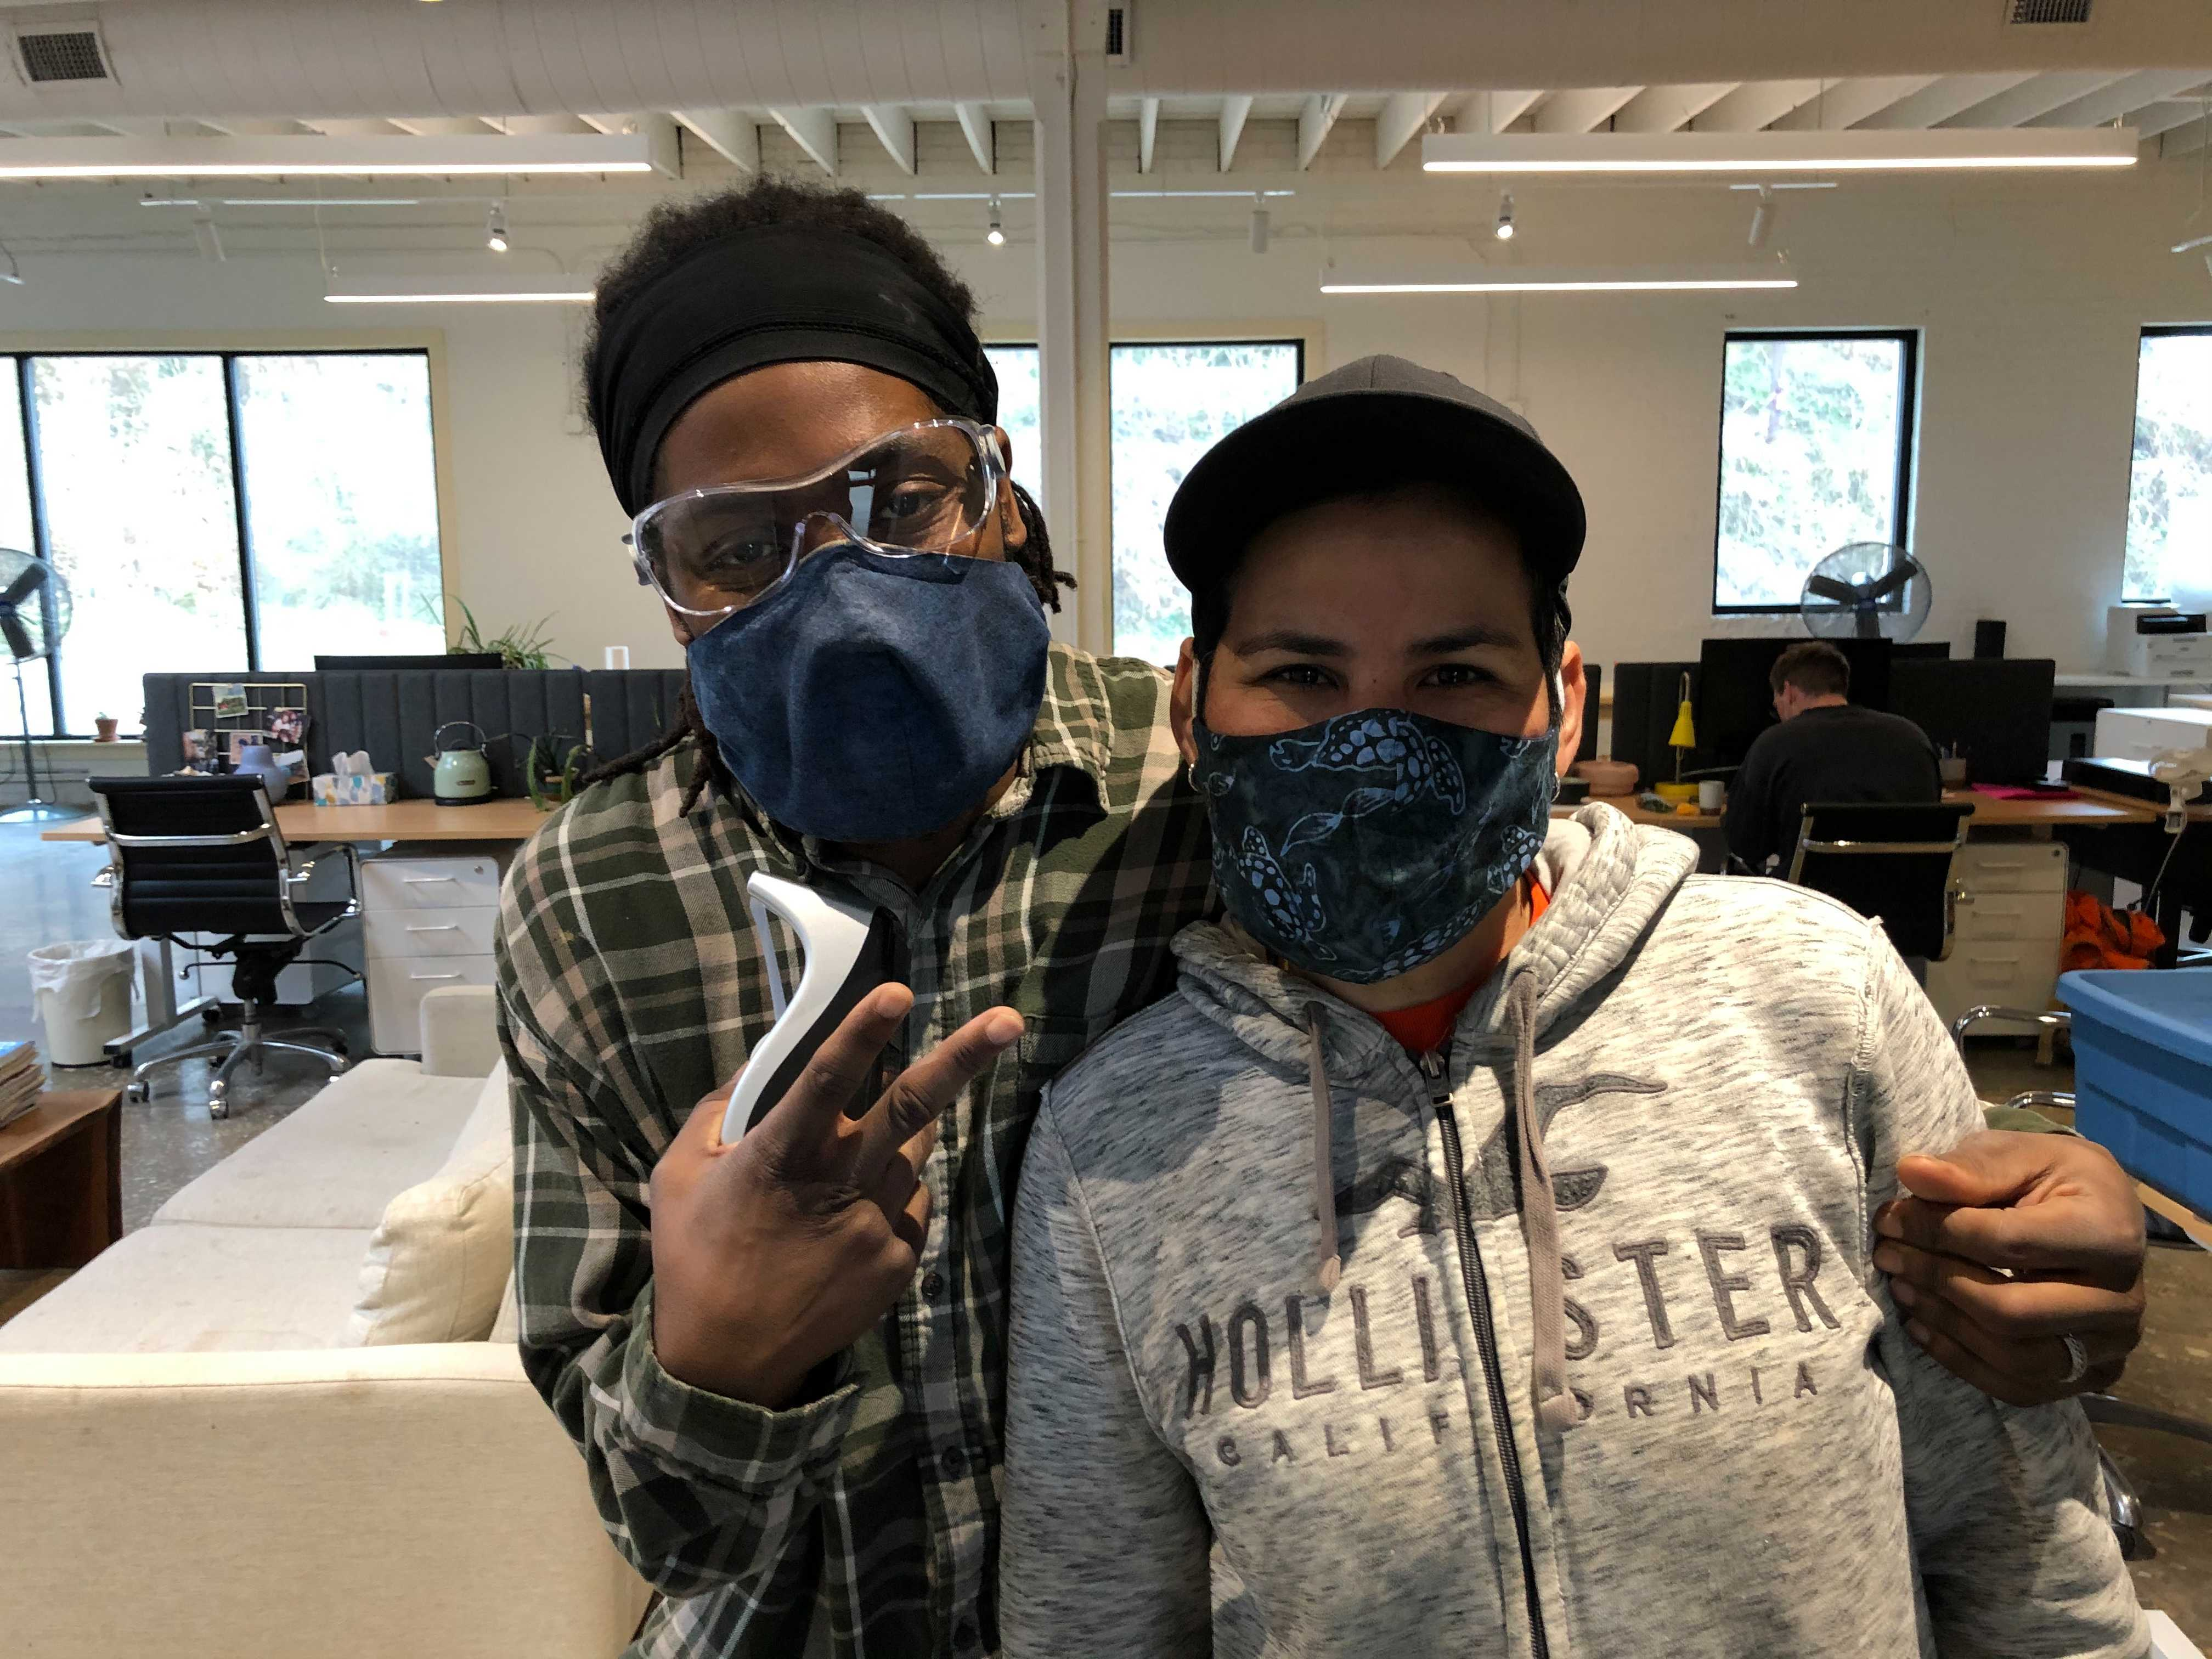 East Fork employee's wearing the masks